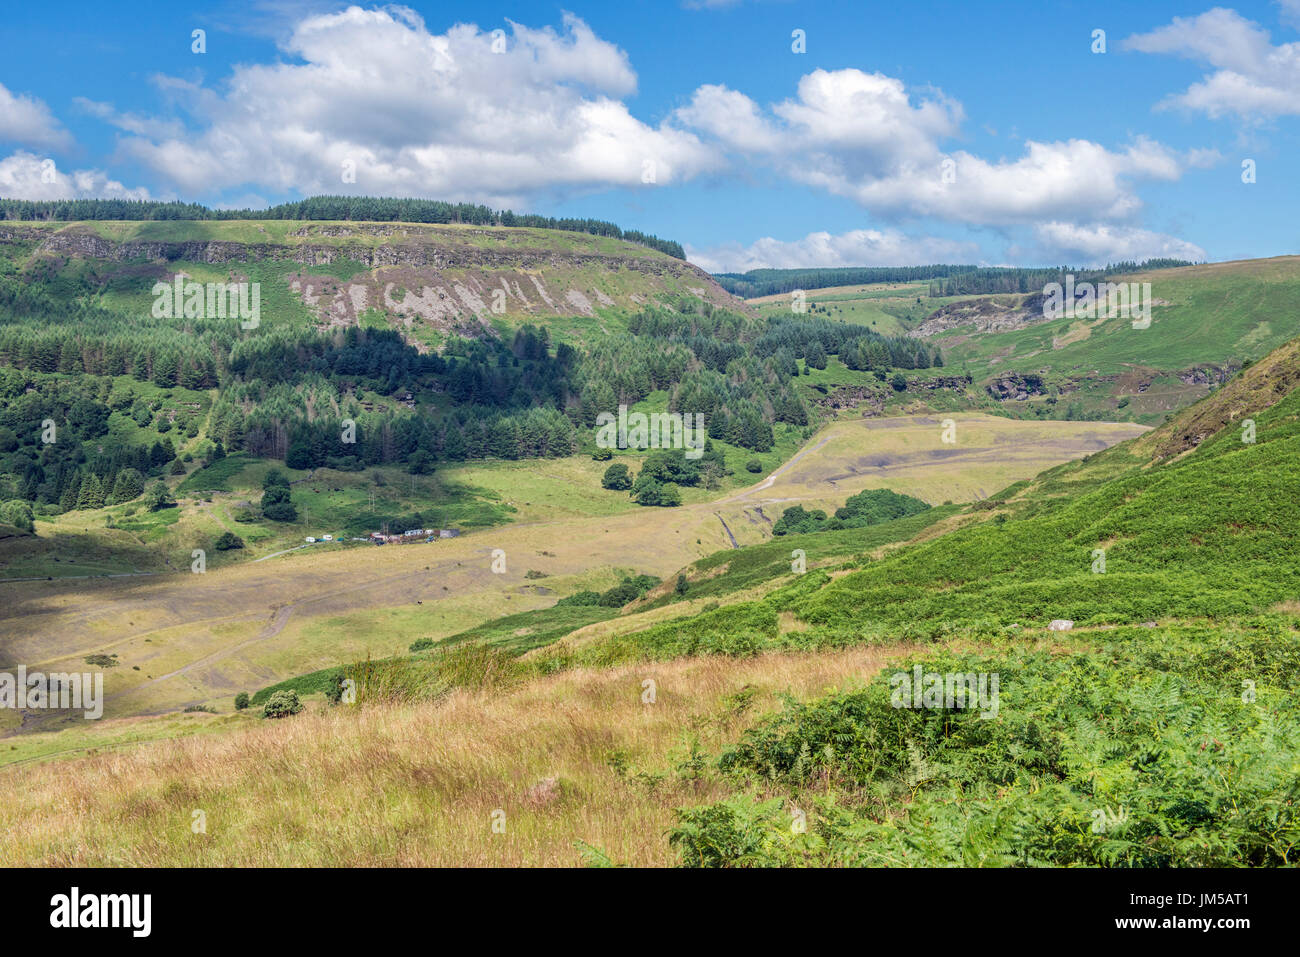 The Upper Reaches of the Rhondda Fawr Valley in south Wales - Stock Image